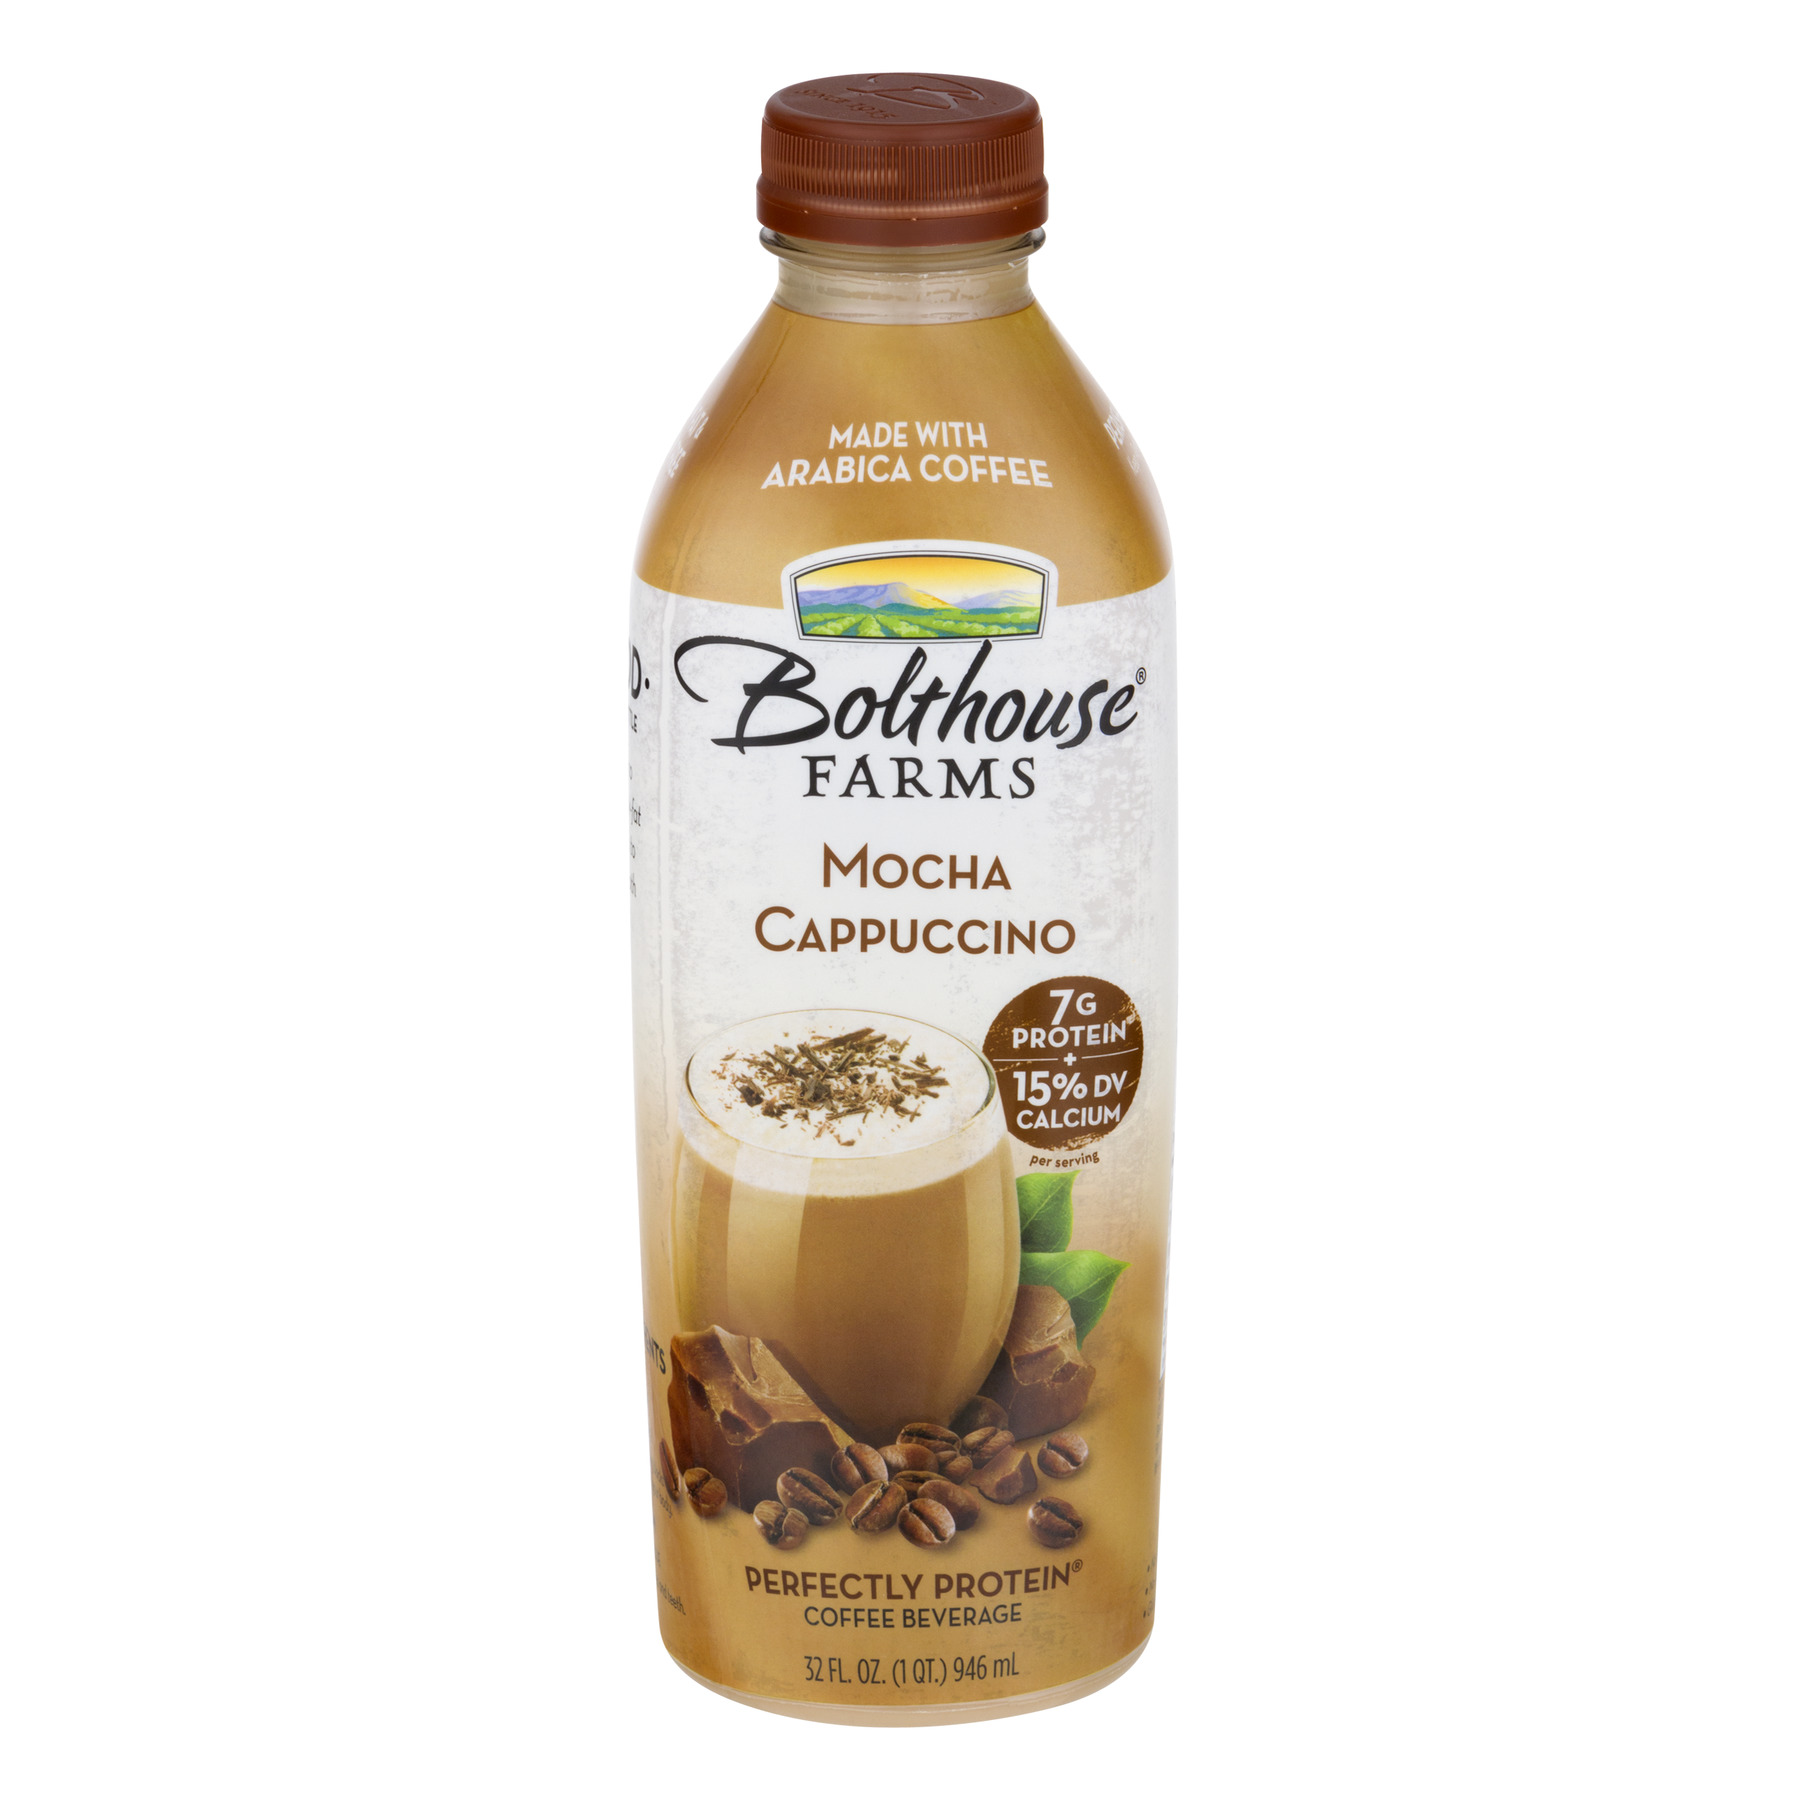 Bolthouse Farms Perfectly Protein Mocha Cappuccino Coffee Beverage 32 fl. oz. Bottle